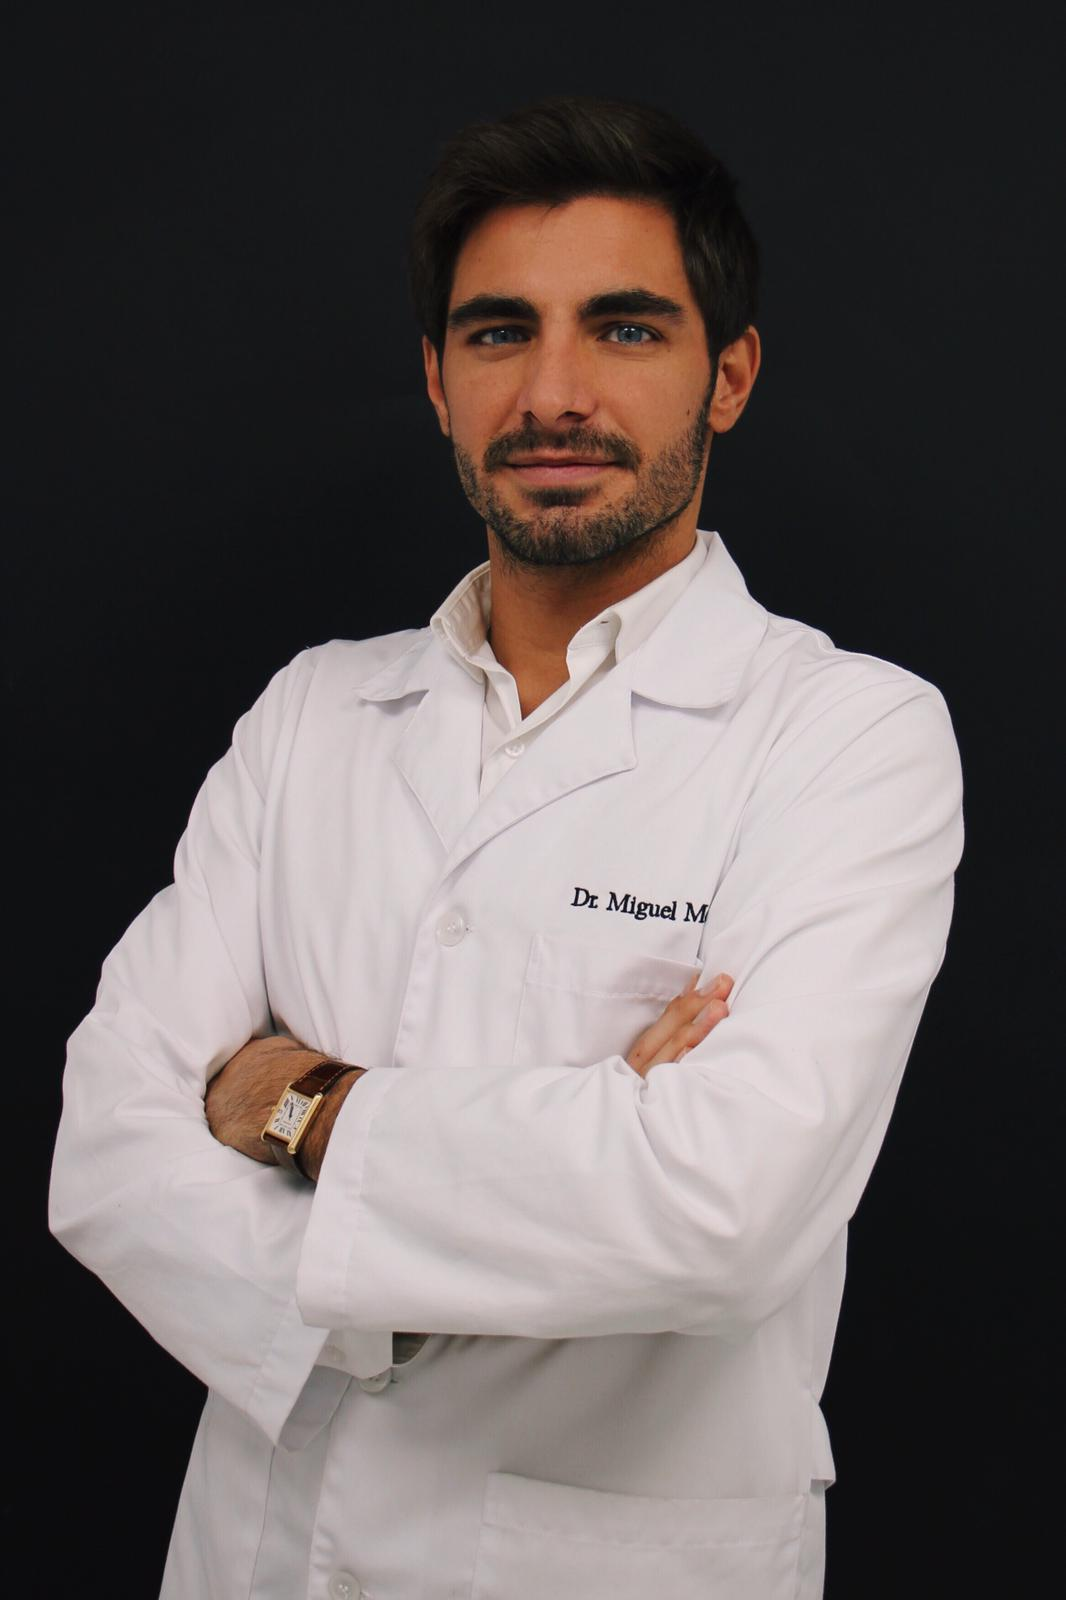 MIGUEL MORGADO - AESTEHETIC MEDICINE   Master Degree in Medicine - Nova Lisbon University  Master Degree in Aesthetic Medicine and Anti-Aging- UMC, Madrid, Spain  Member of the Portuguese Society of Aesthetic Medicine and Anti-Aging (SPME).  Member of the Spanish Society of Aesthetic Medicine (SEME).